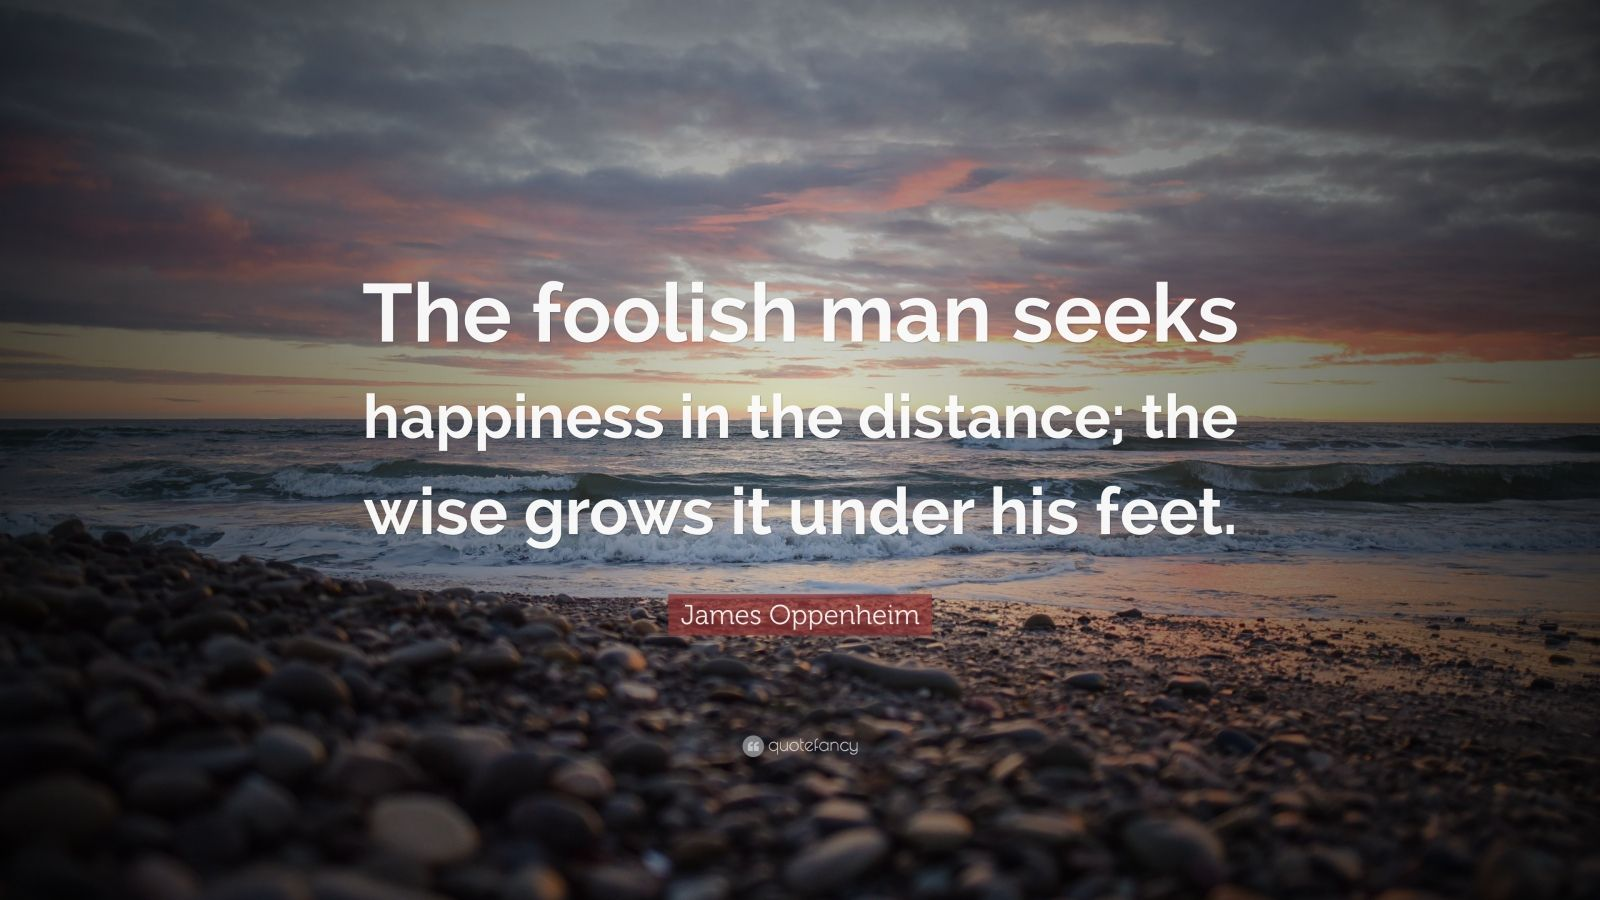 The Wise Foolish Man Seeks Happiness in the Distance the Grows It Under His Feet